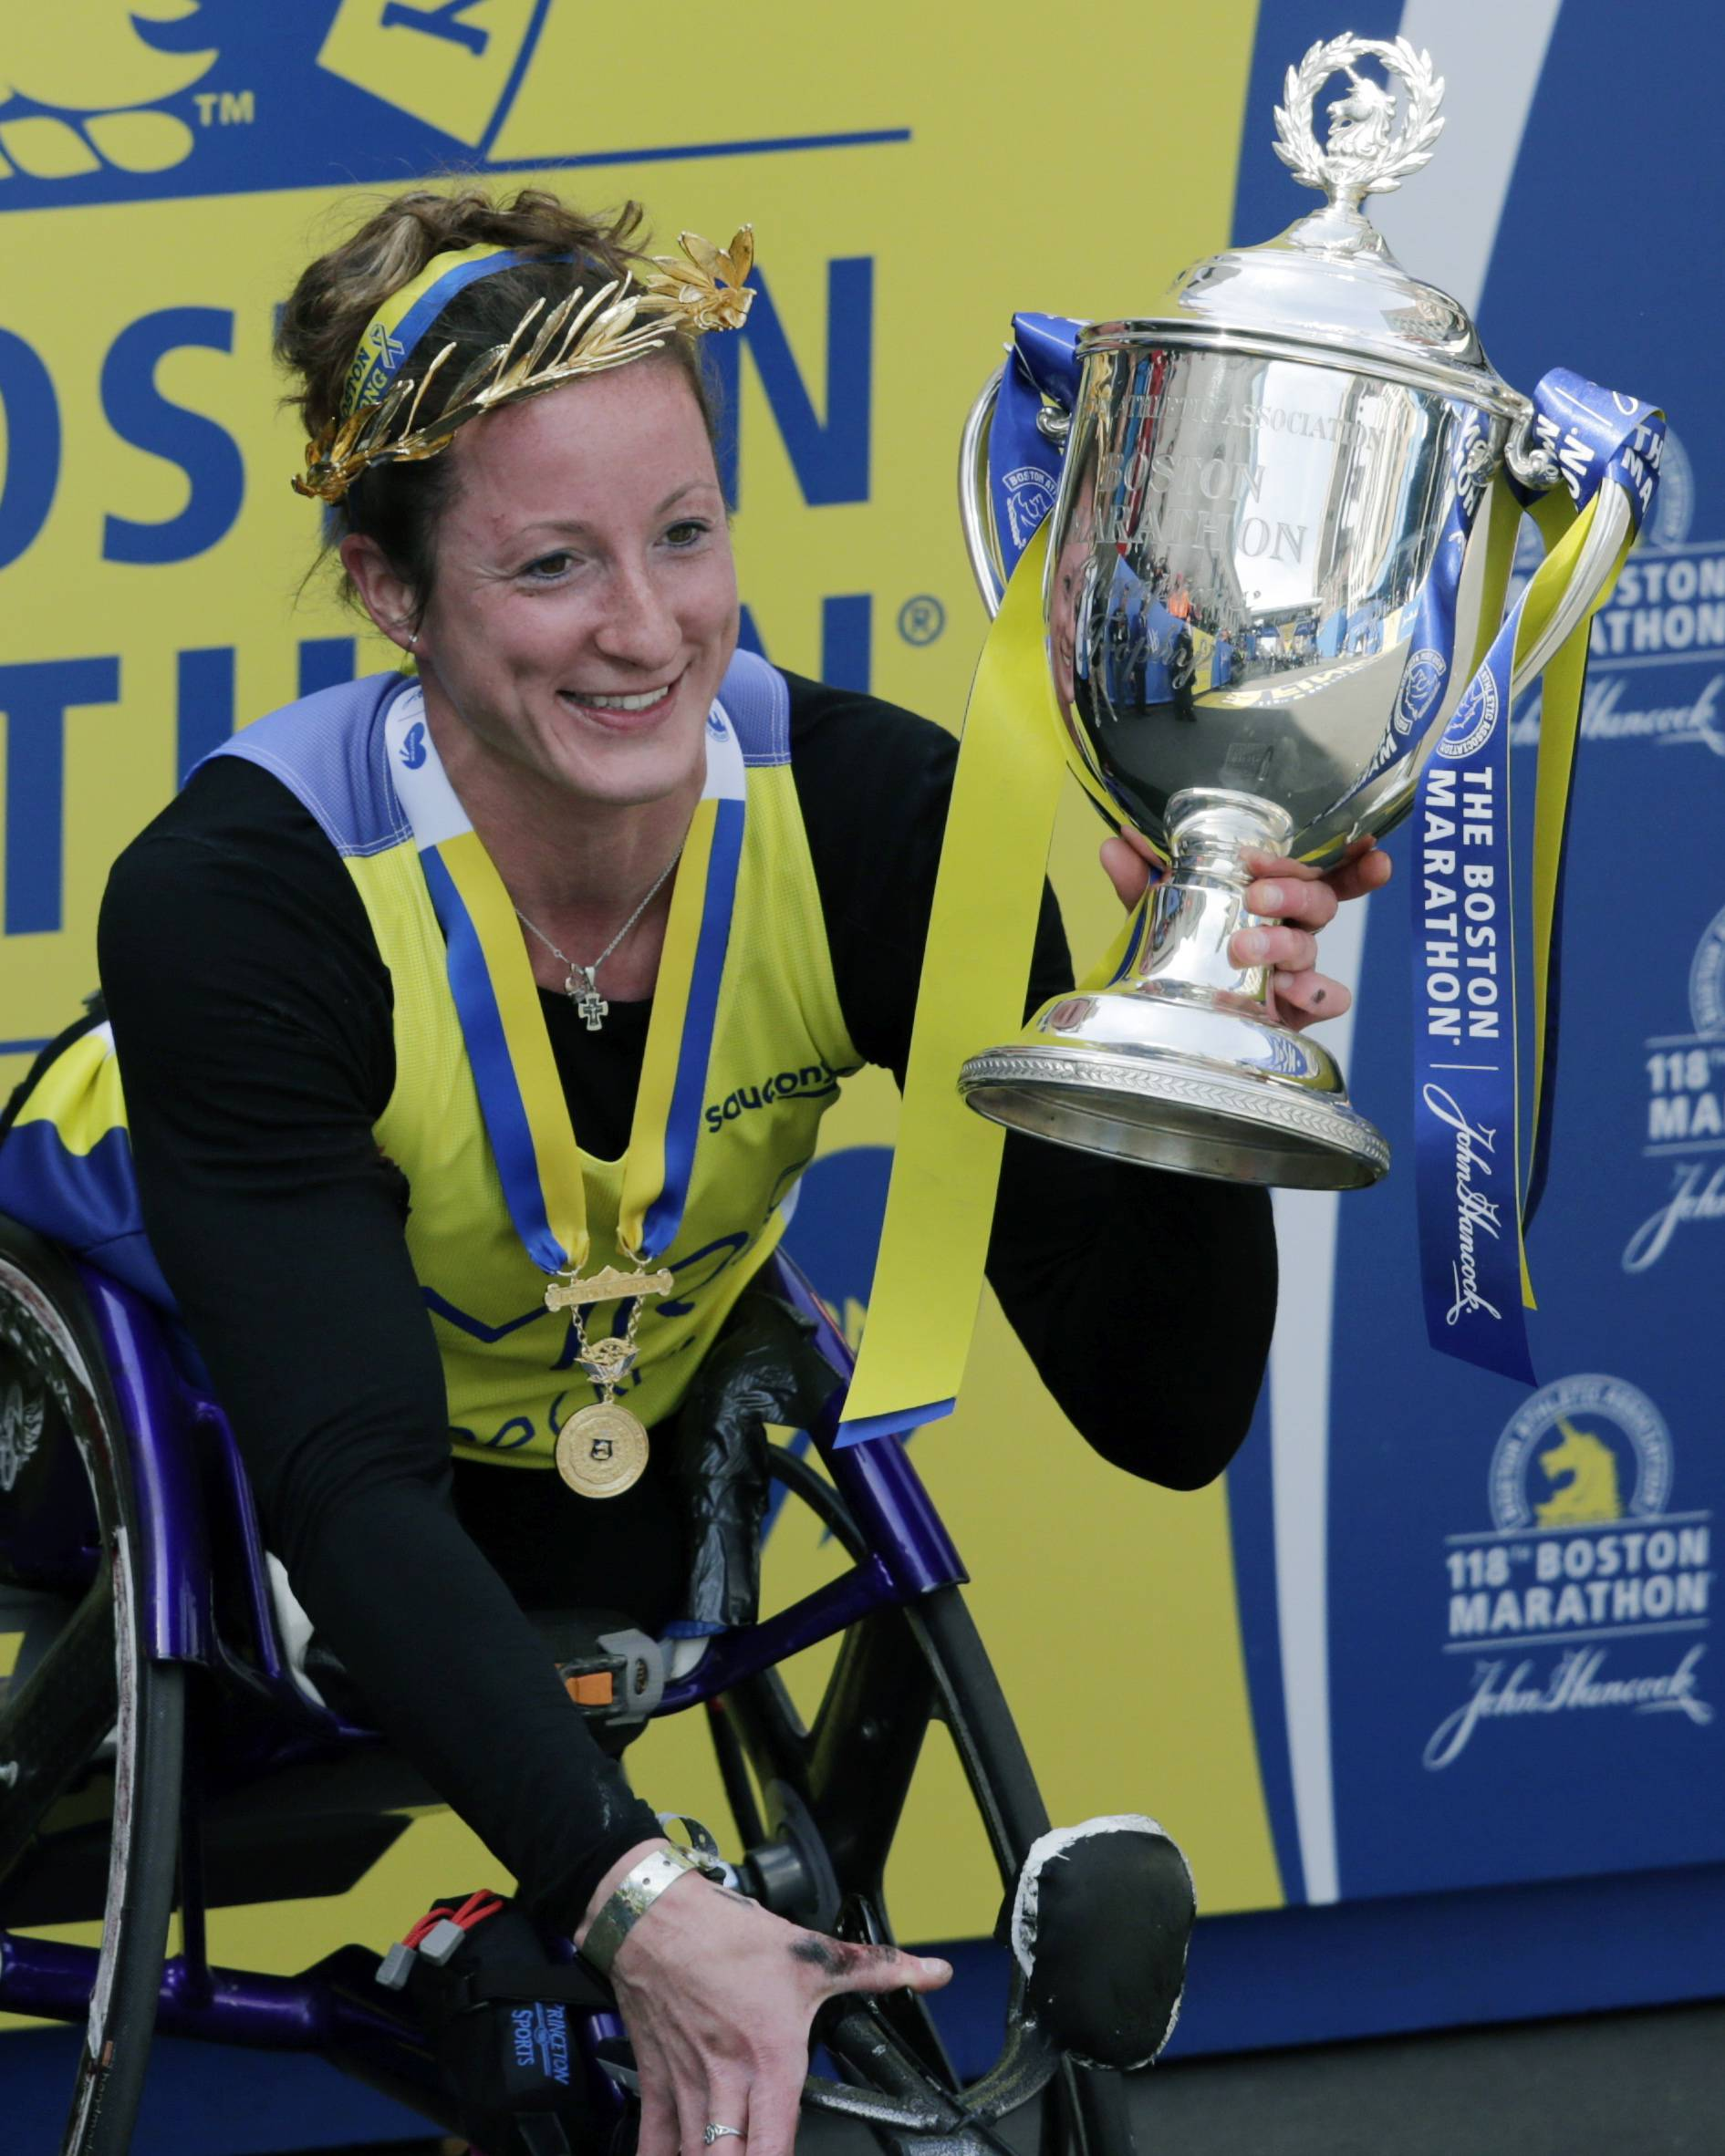 Tatyana McFadden, of the United States, displays her trophy after winning the women's wheelchair division of the 118th Boston Marathon Monday, April 21, 2014 in Boston.